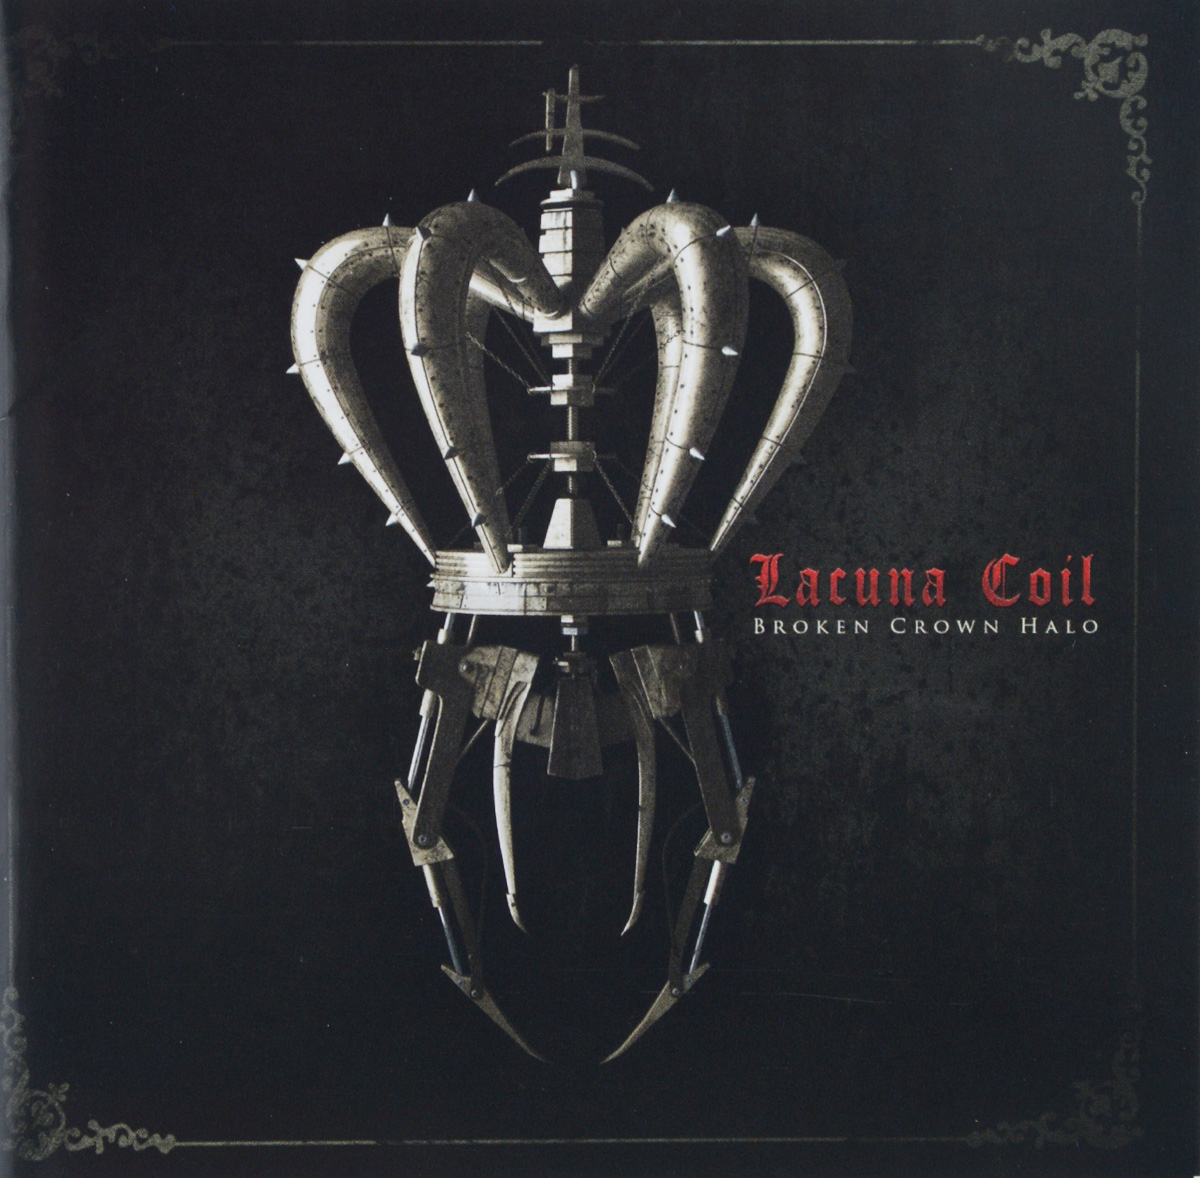 Lacuna Coil Lacuna Coil. Broken Crown Halo borg warner e556 ignition coil